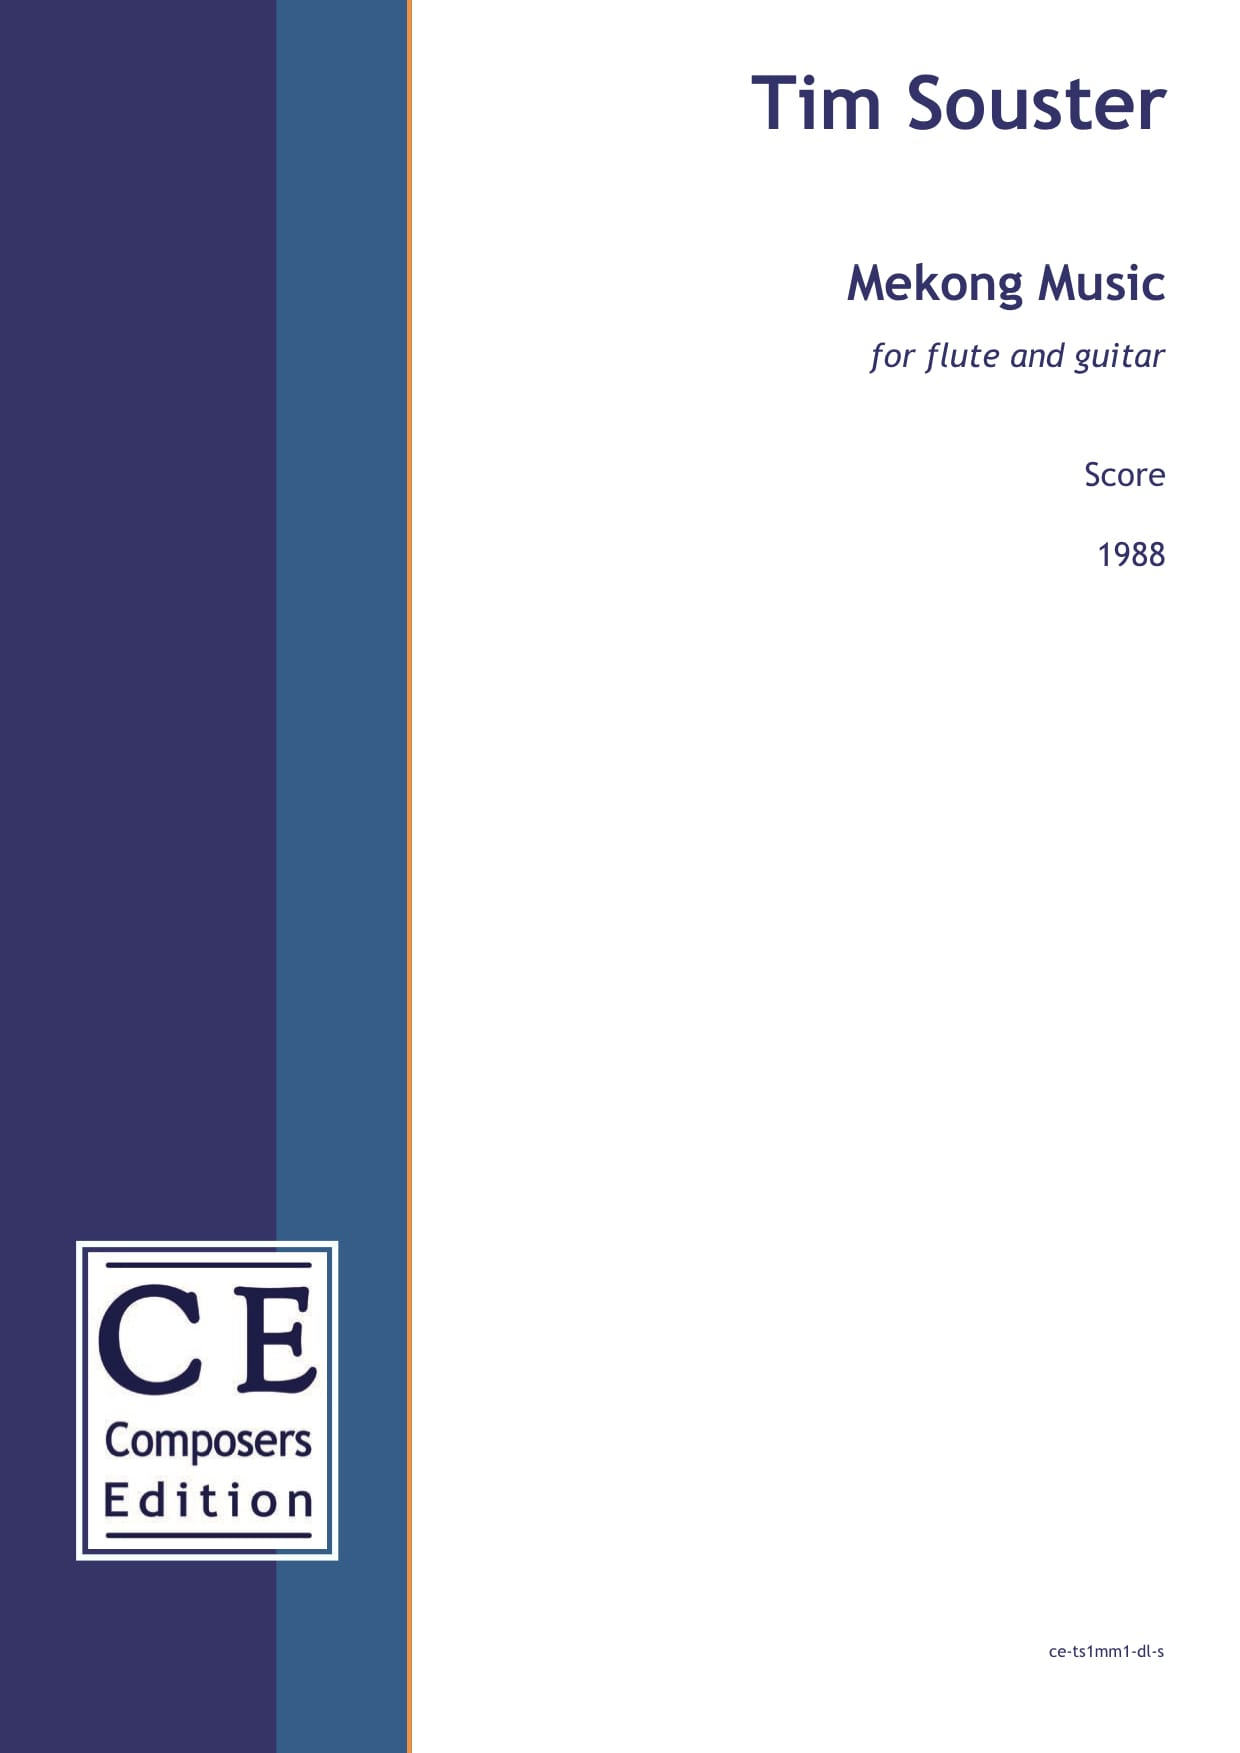 Tim Souster: Mekong Music for flute and guitar